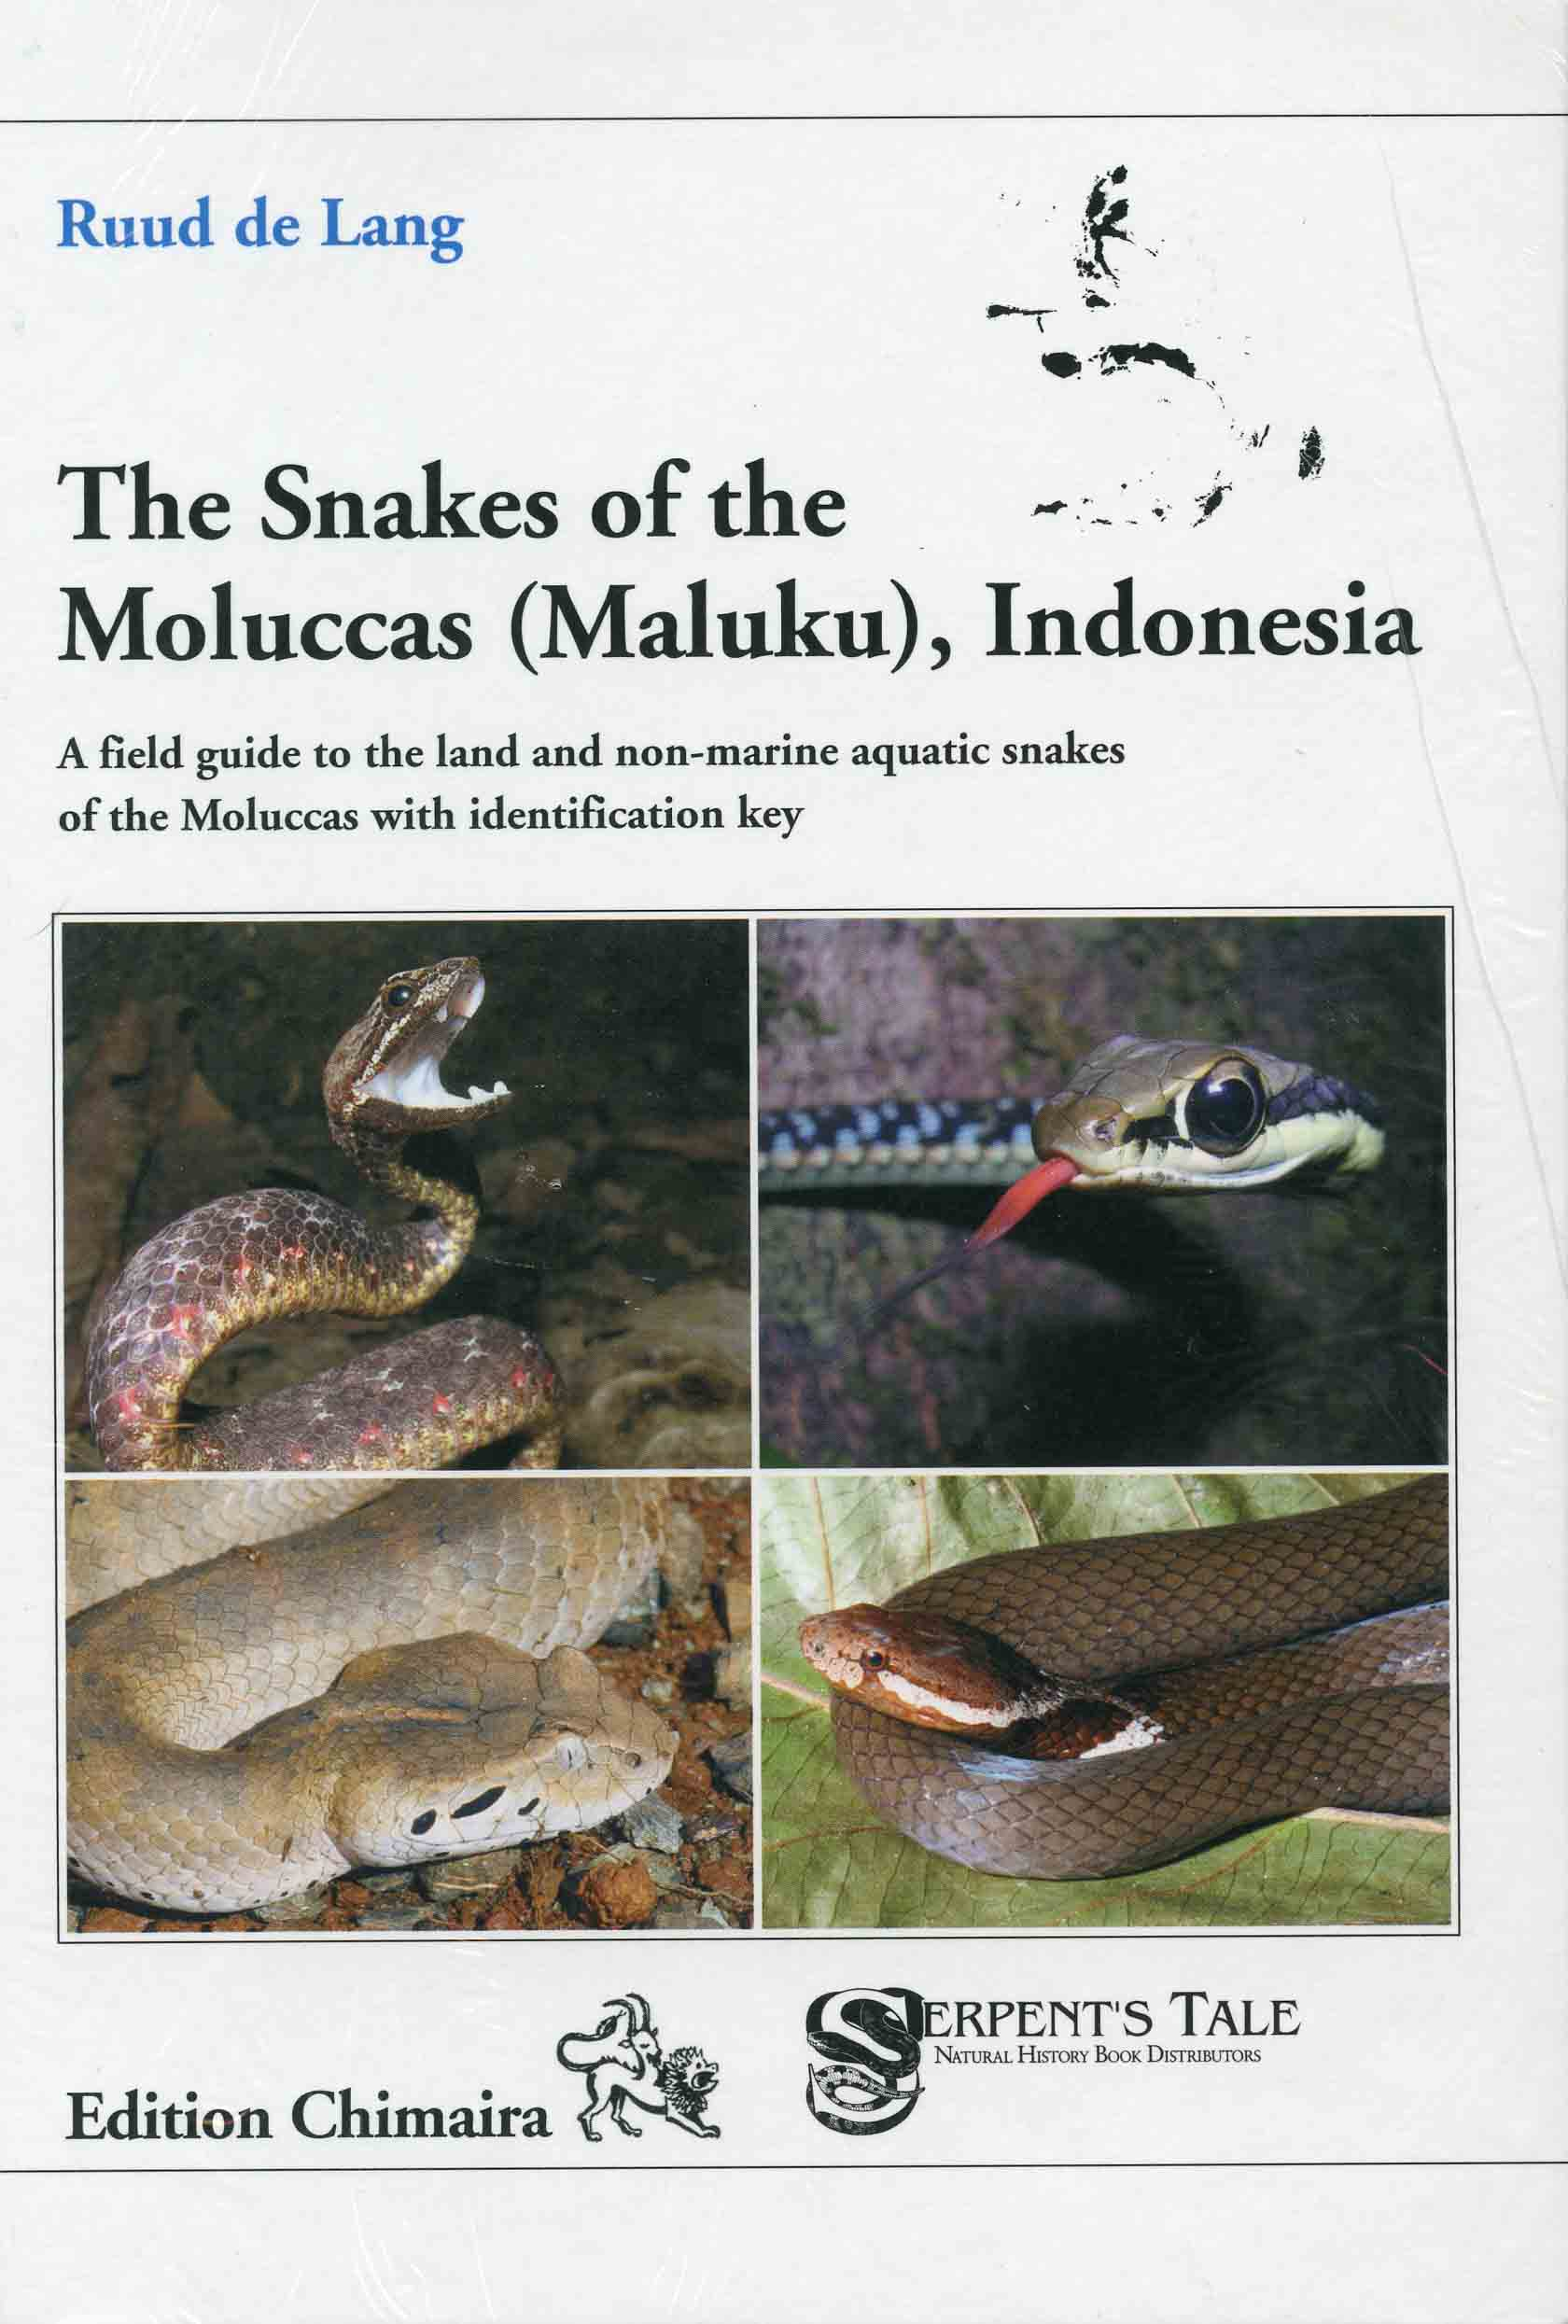 Image for The Snakes of the Moluccas (Maluku), Indonesia: A Field Guide to the Land and Non-marine Aquatic Snakes of the Moluccas with Identification Key,